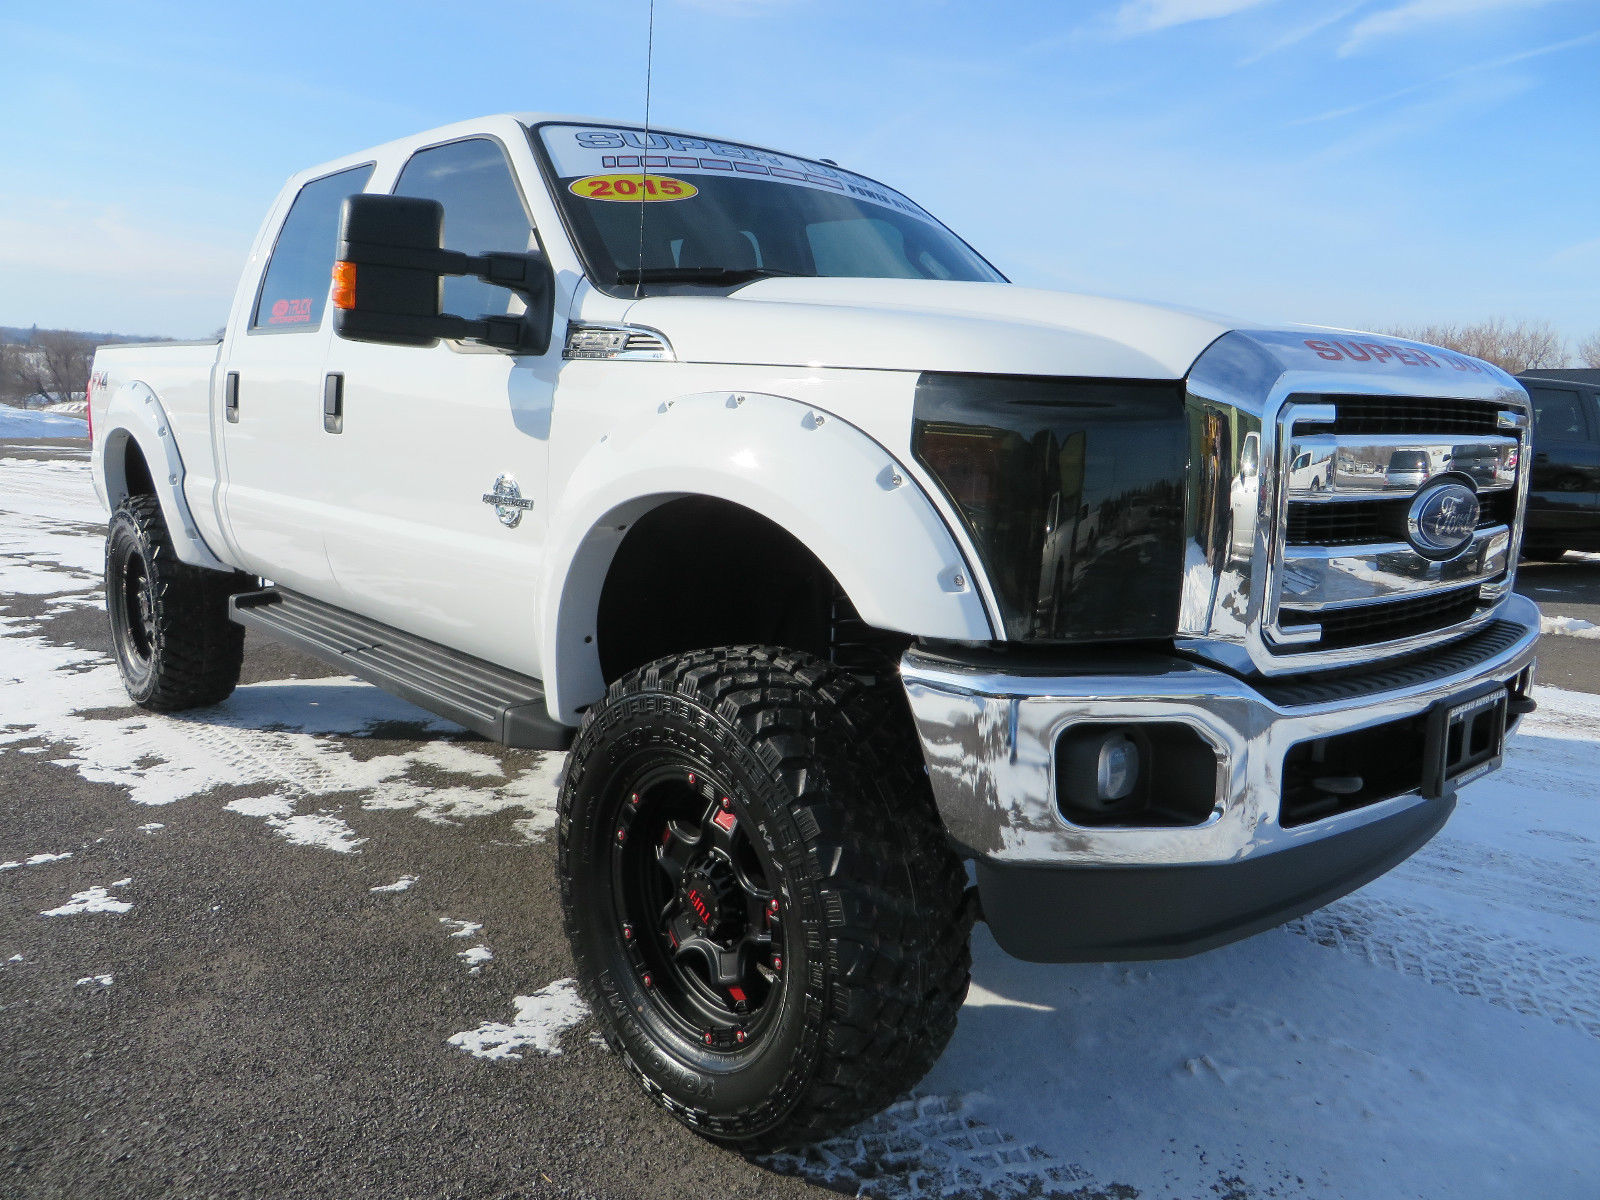 Lifted Ford Super Duty Trucks For Sale | 2018, 2019, 2020 Ford Cars